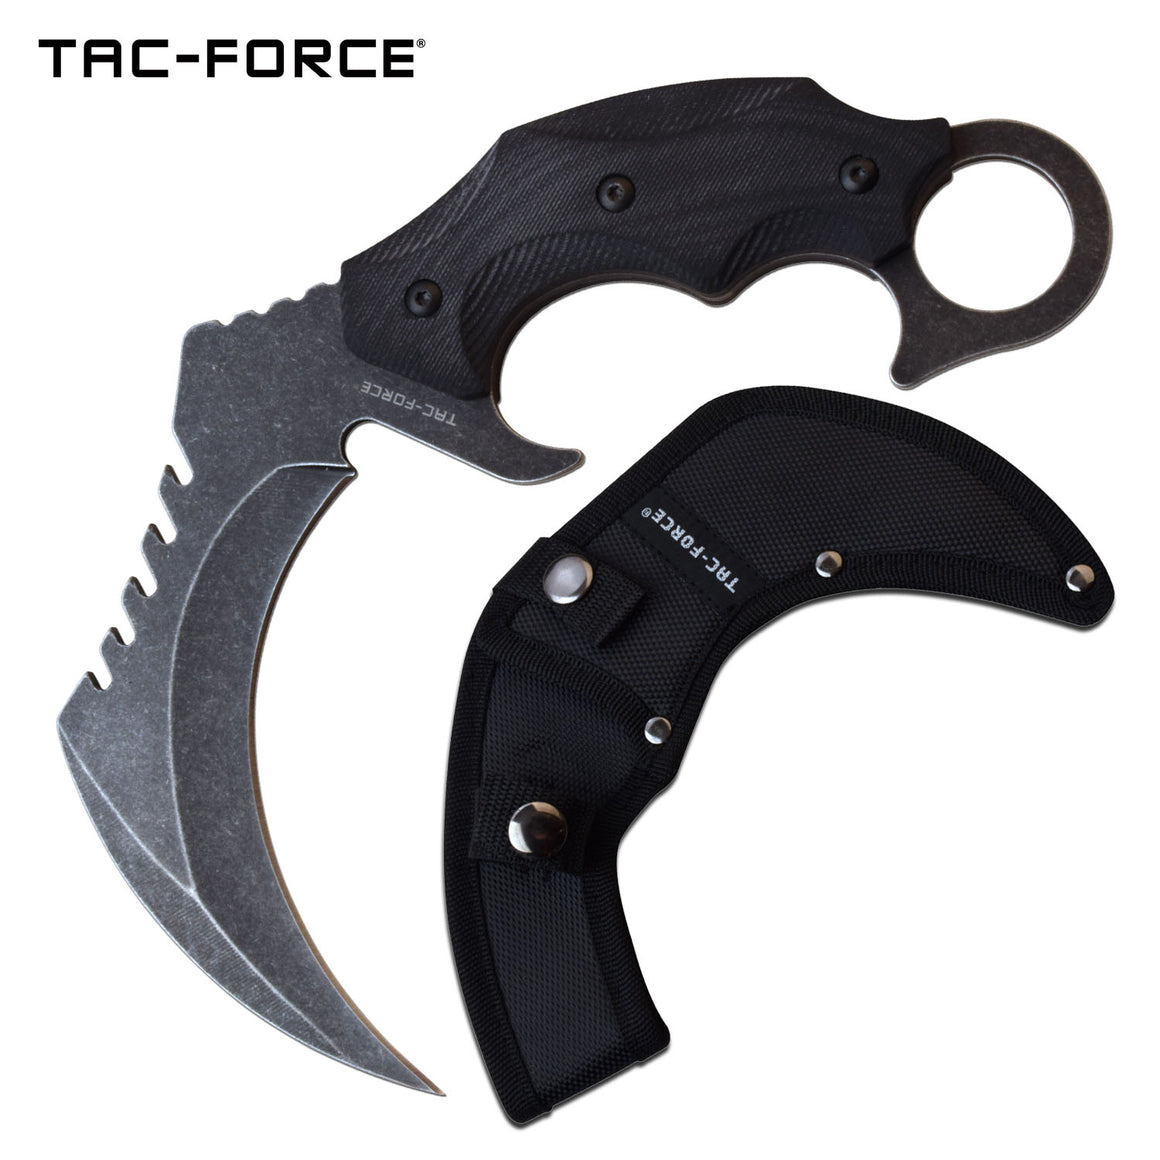 Tac-Force TF-FIX016BK Fixed Blade Knife